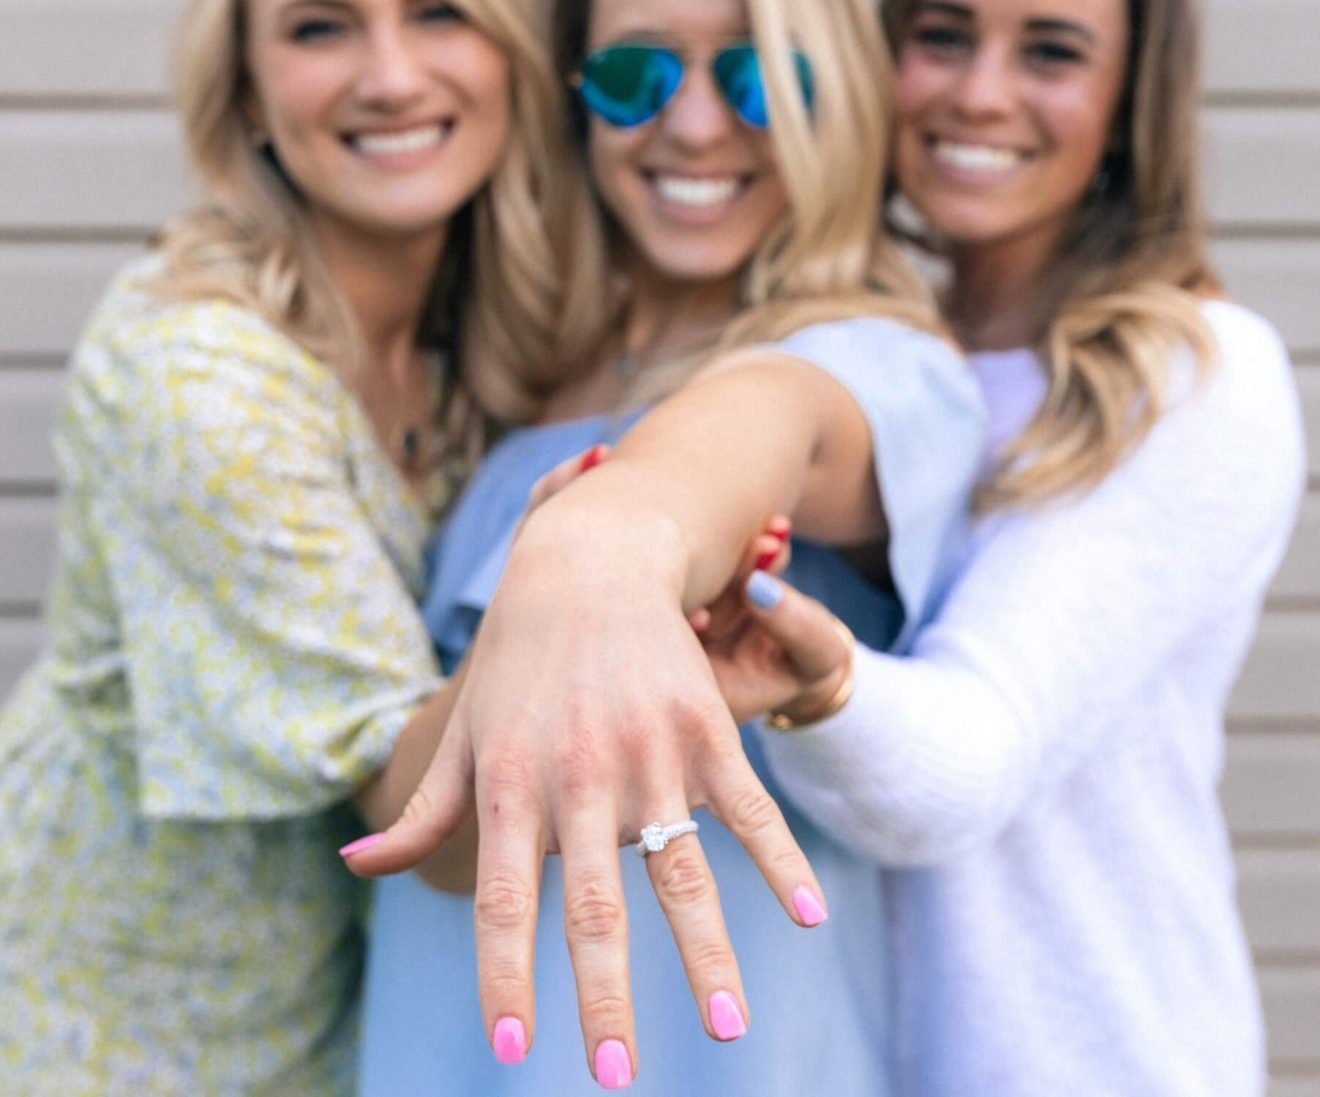 Girl showing off her radiant shape engagement ring